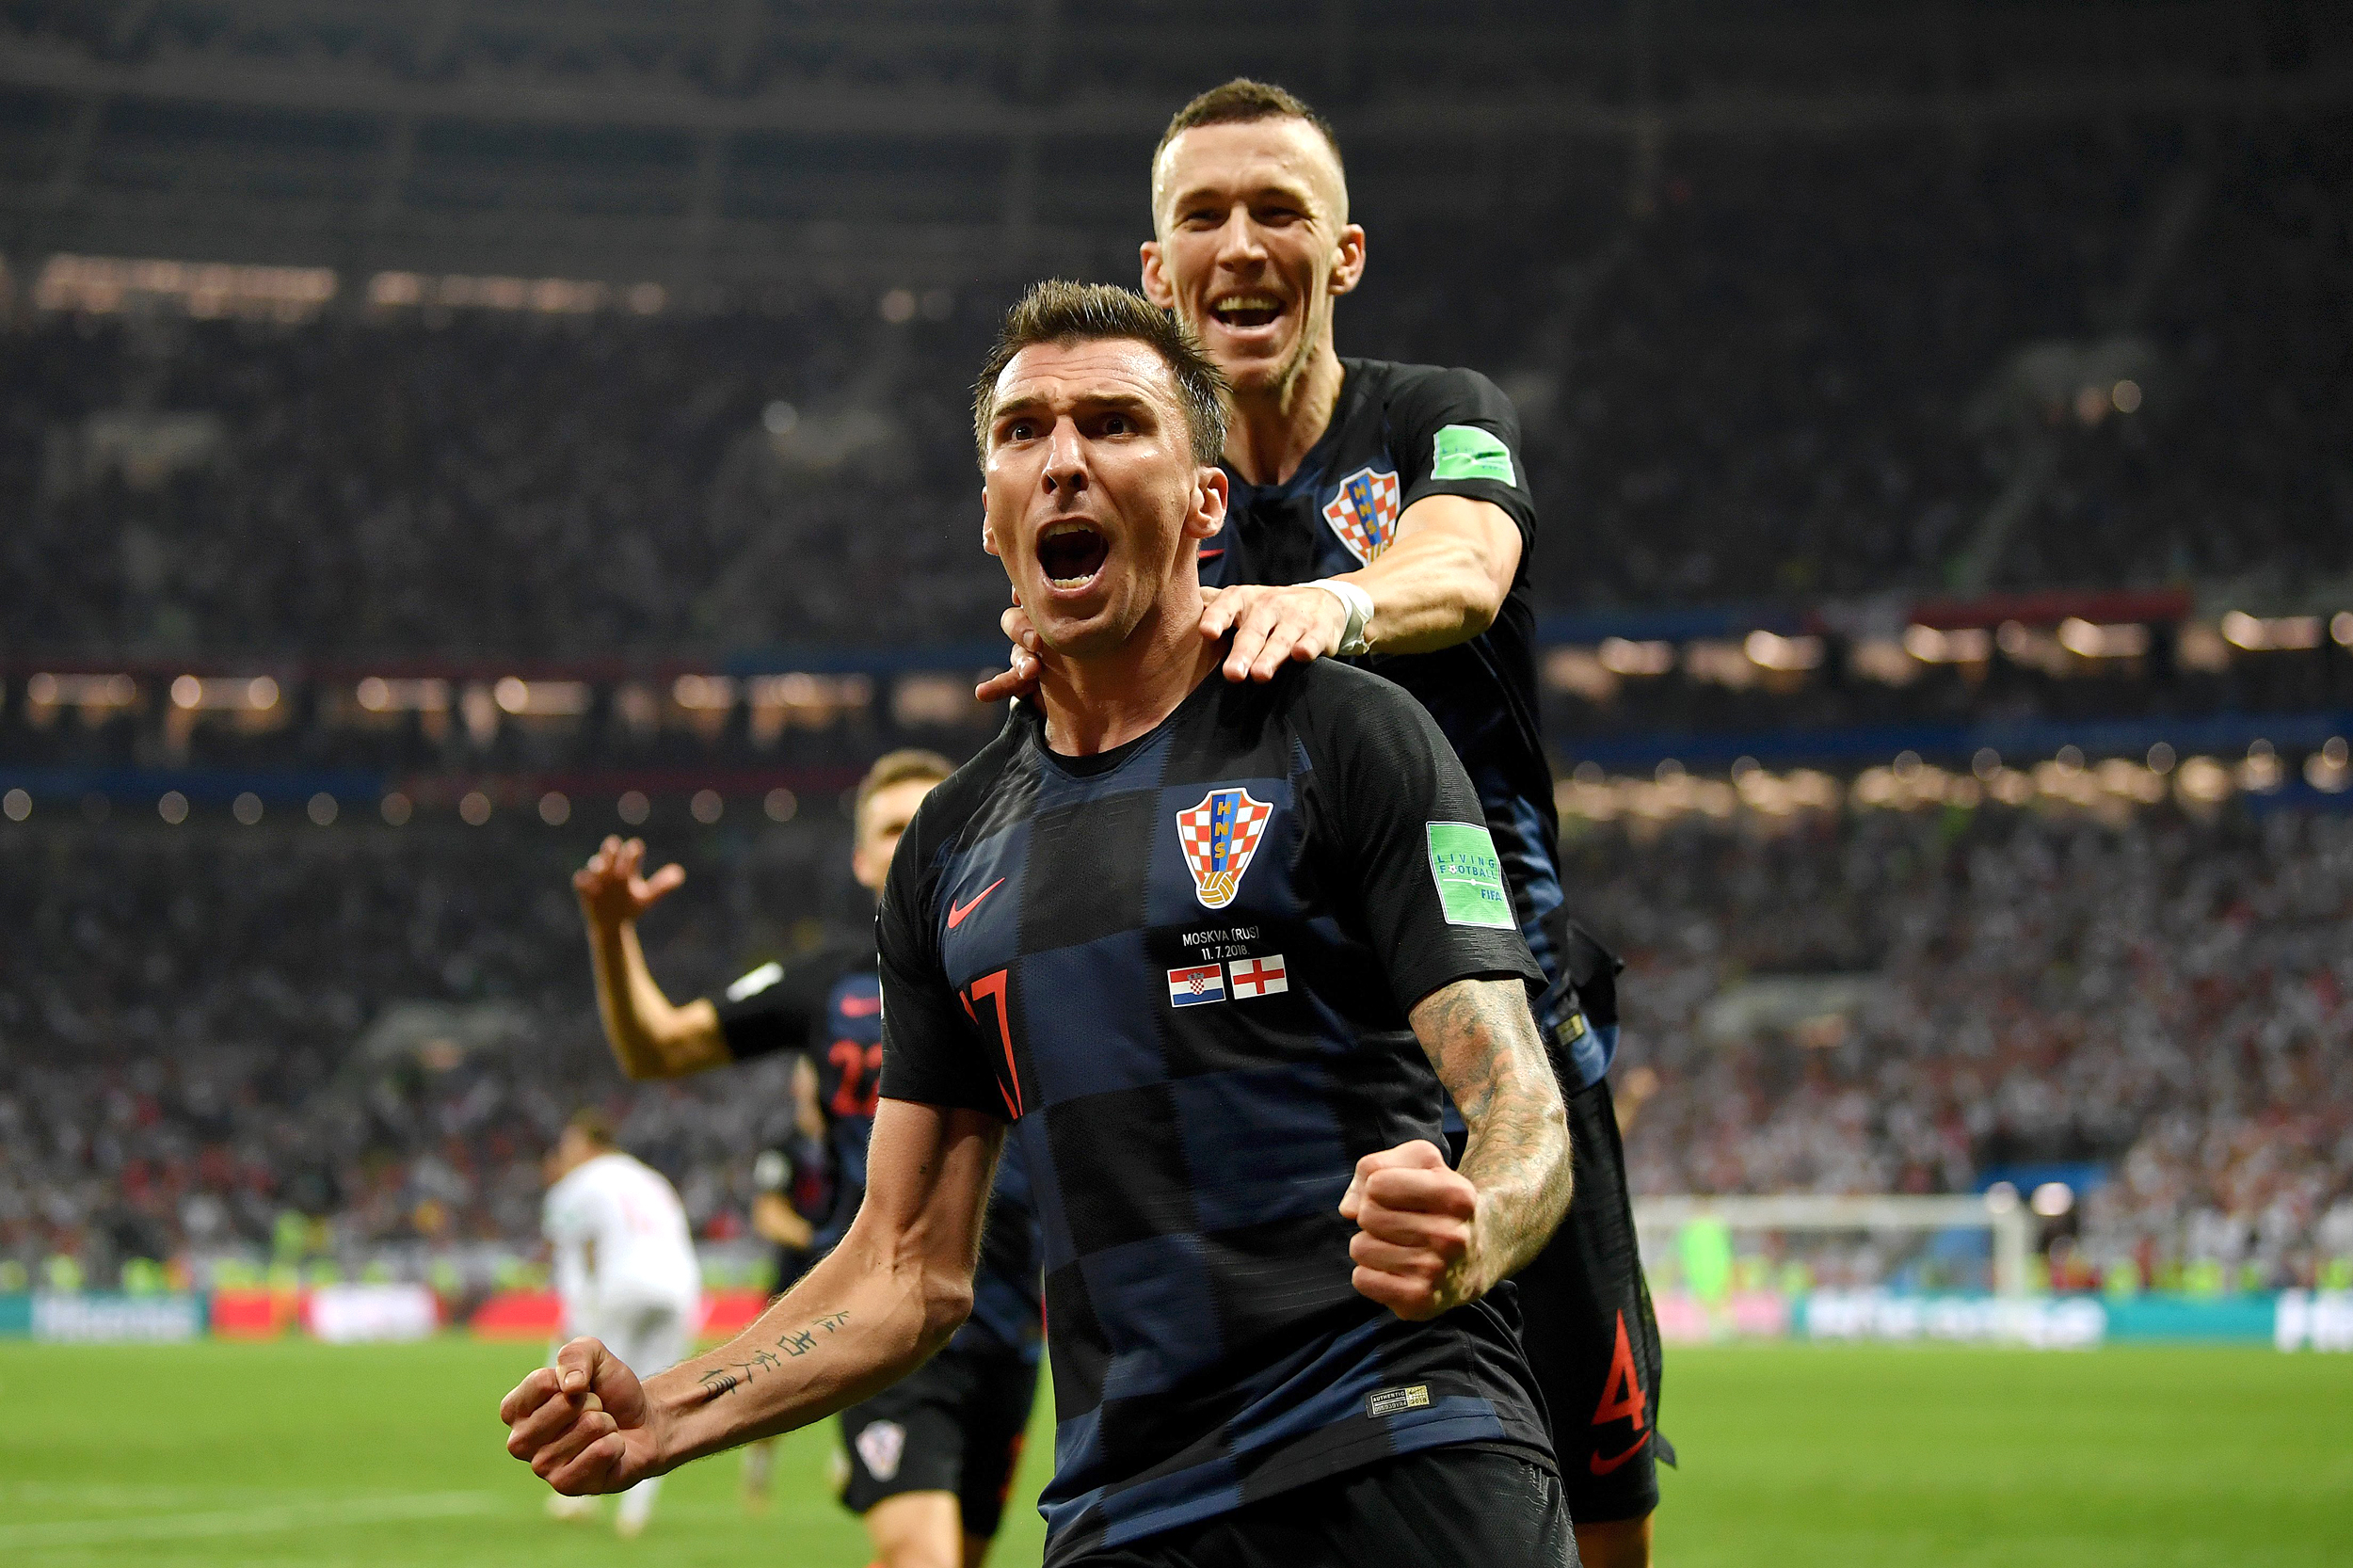 Croatia-beats-England-2-1-in-extra-time;-will-face-France-in-World-Cup-final